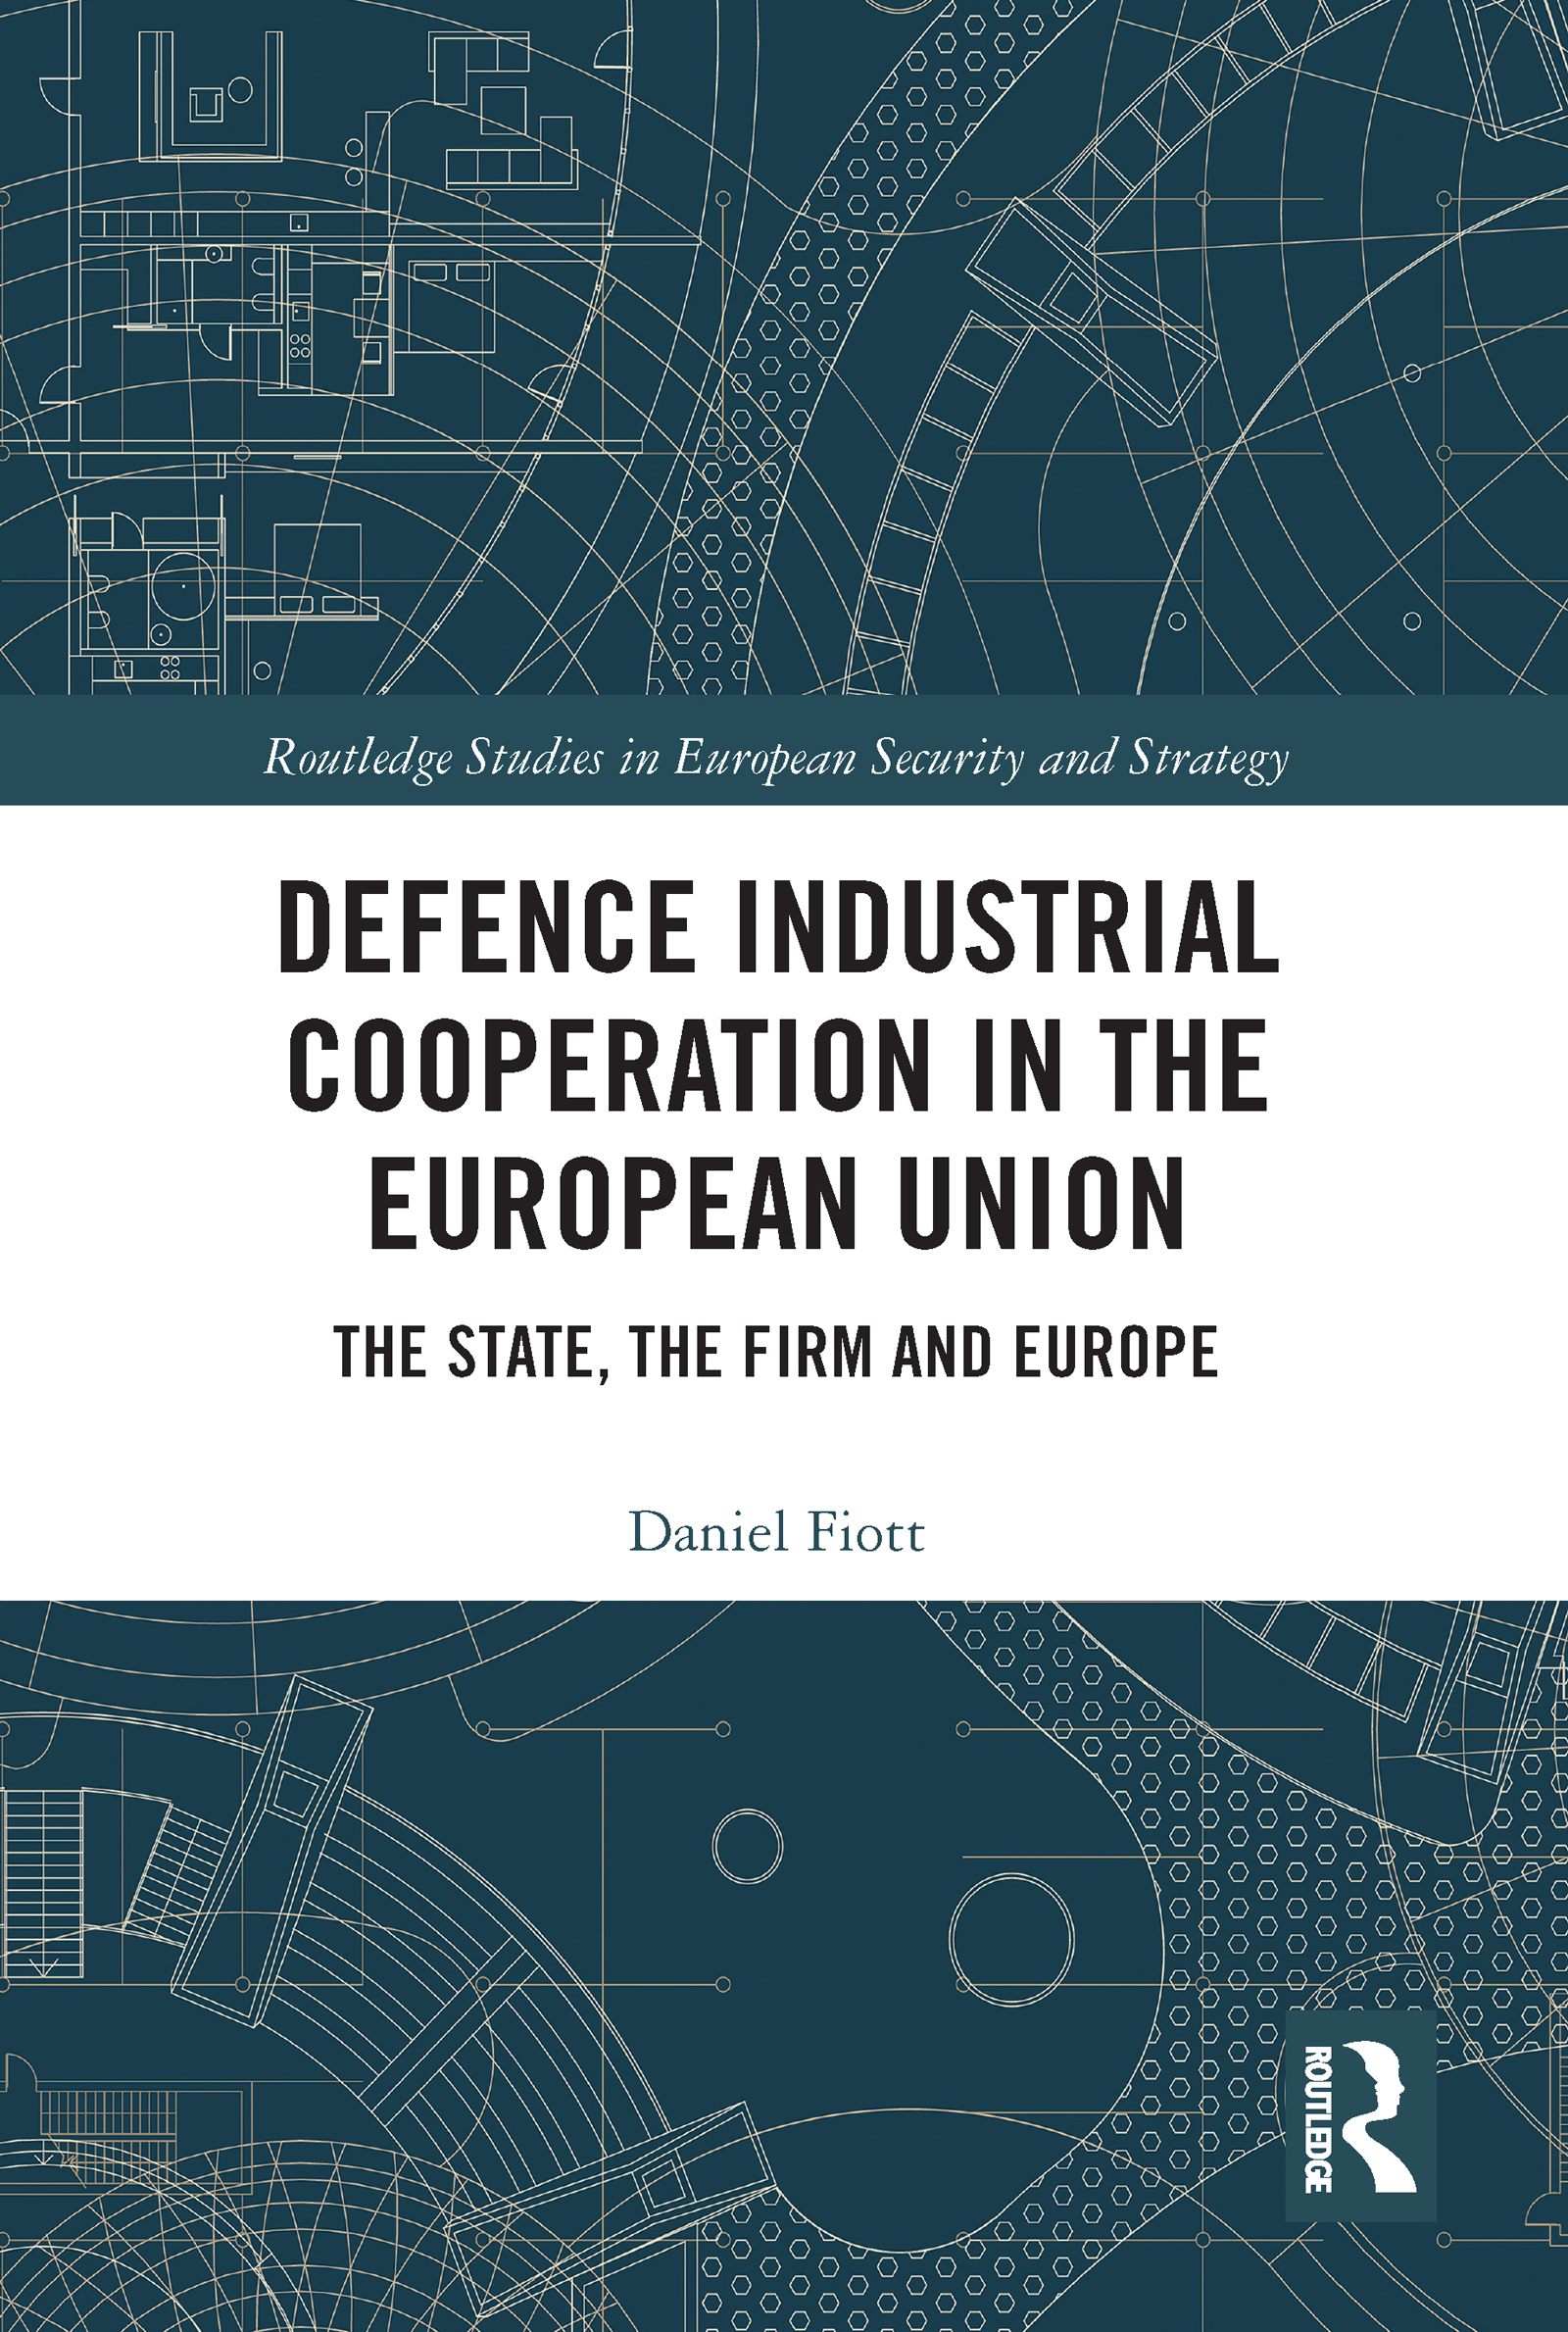 Defence Industrial Cooperation in the European Union